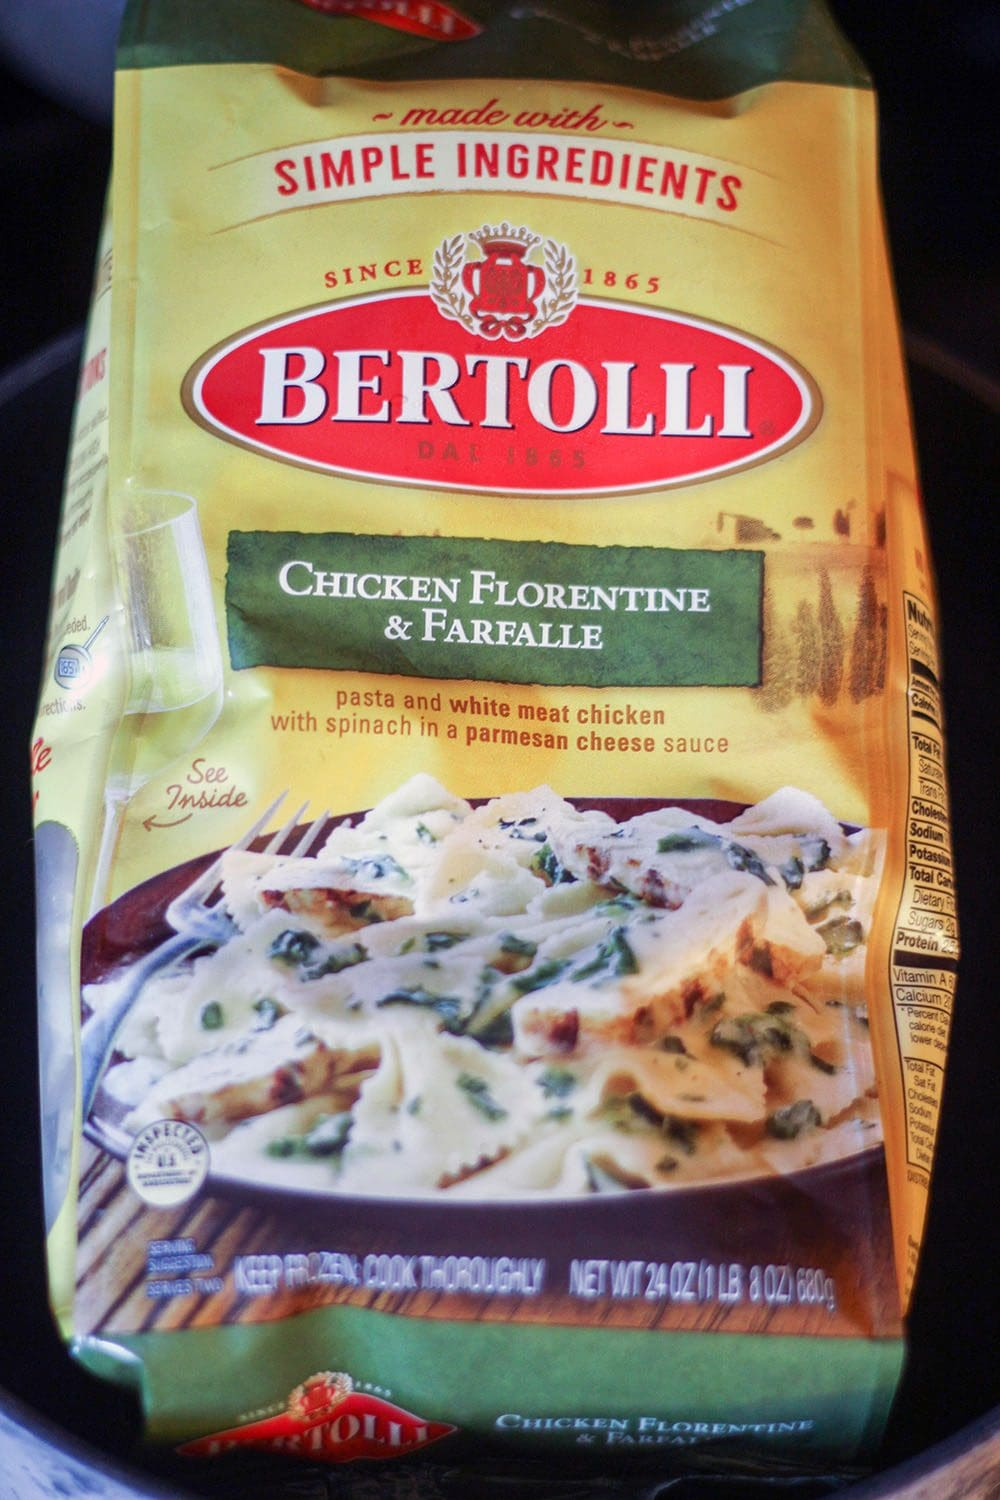 Bertolli new transparent bag and made with simple ingredients